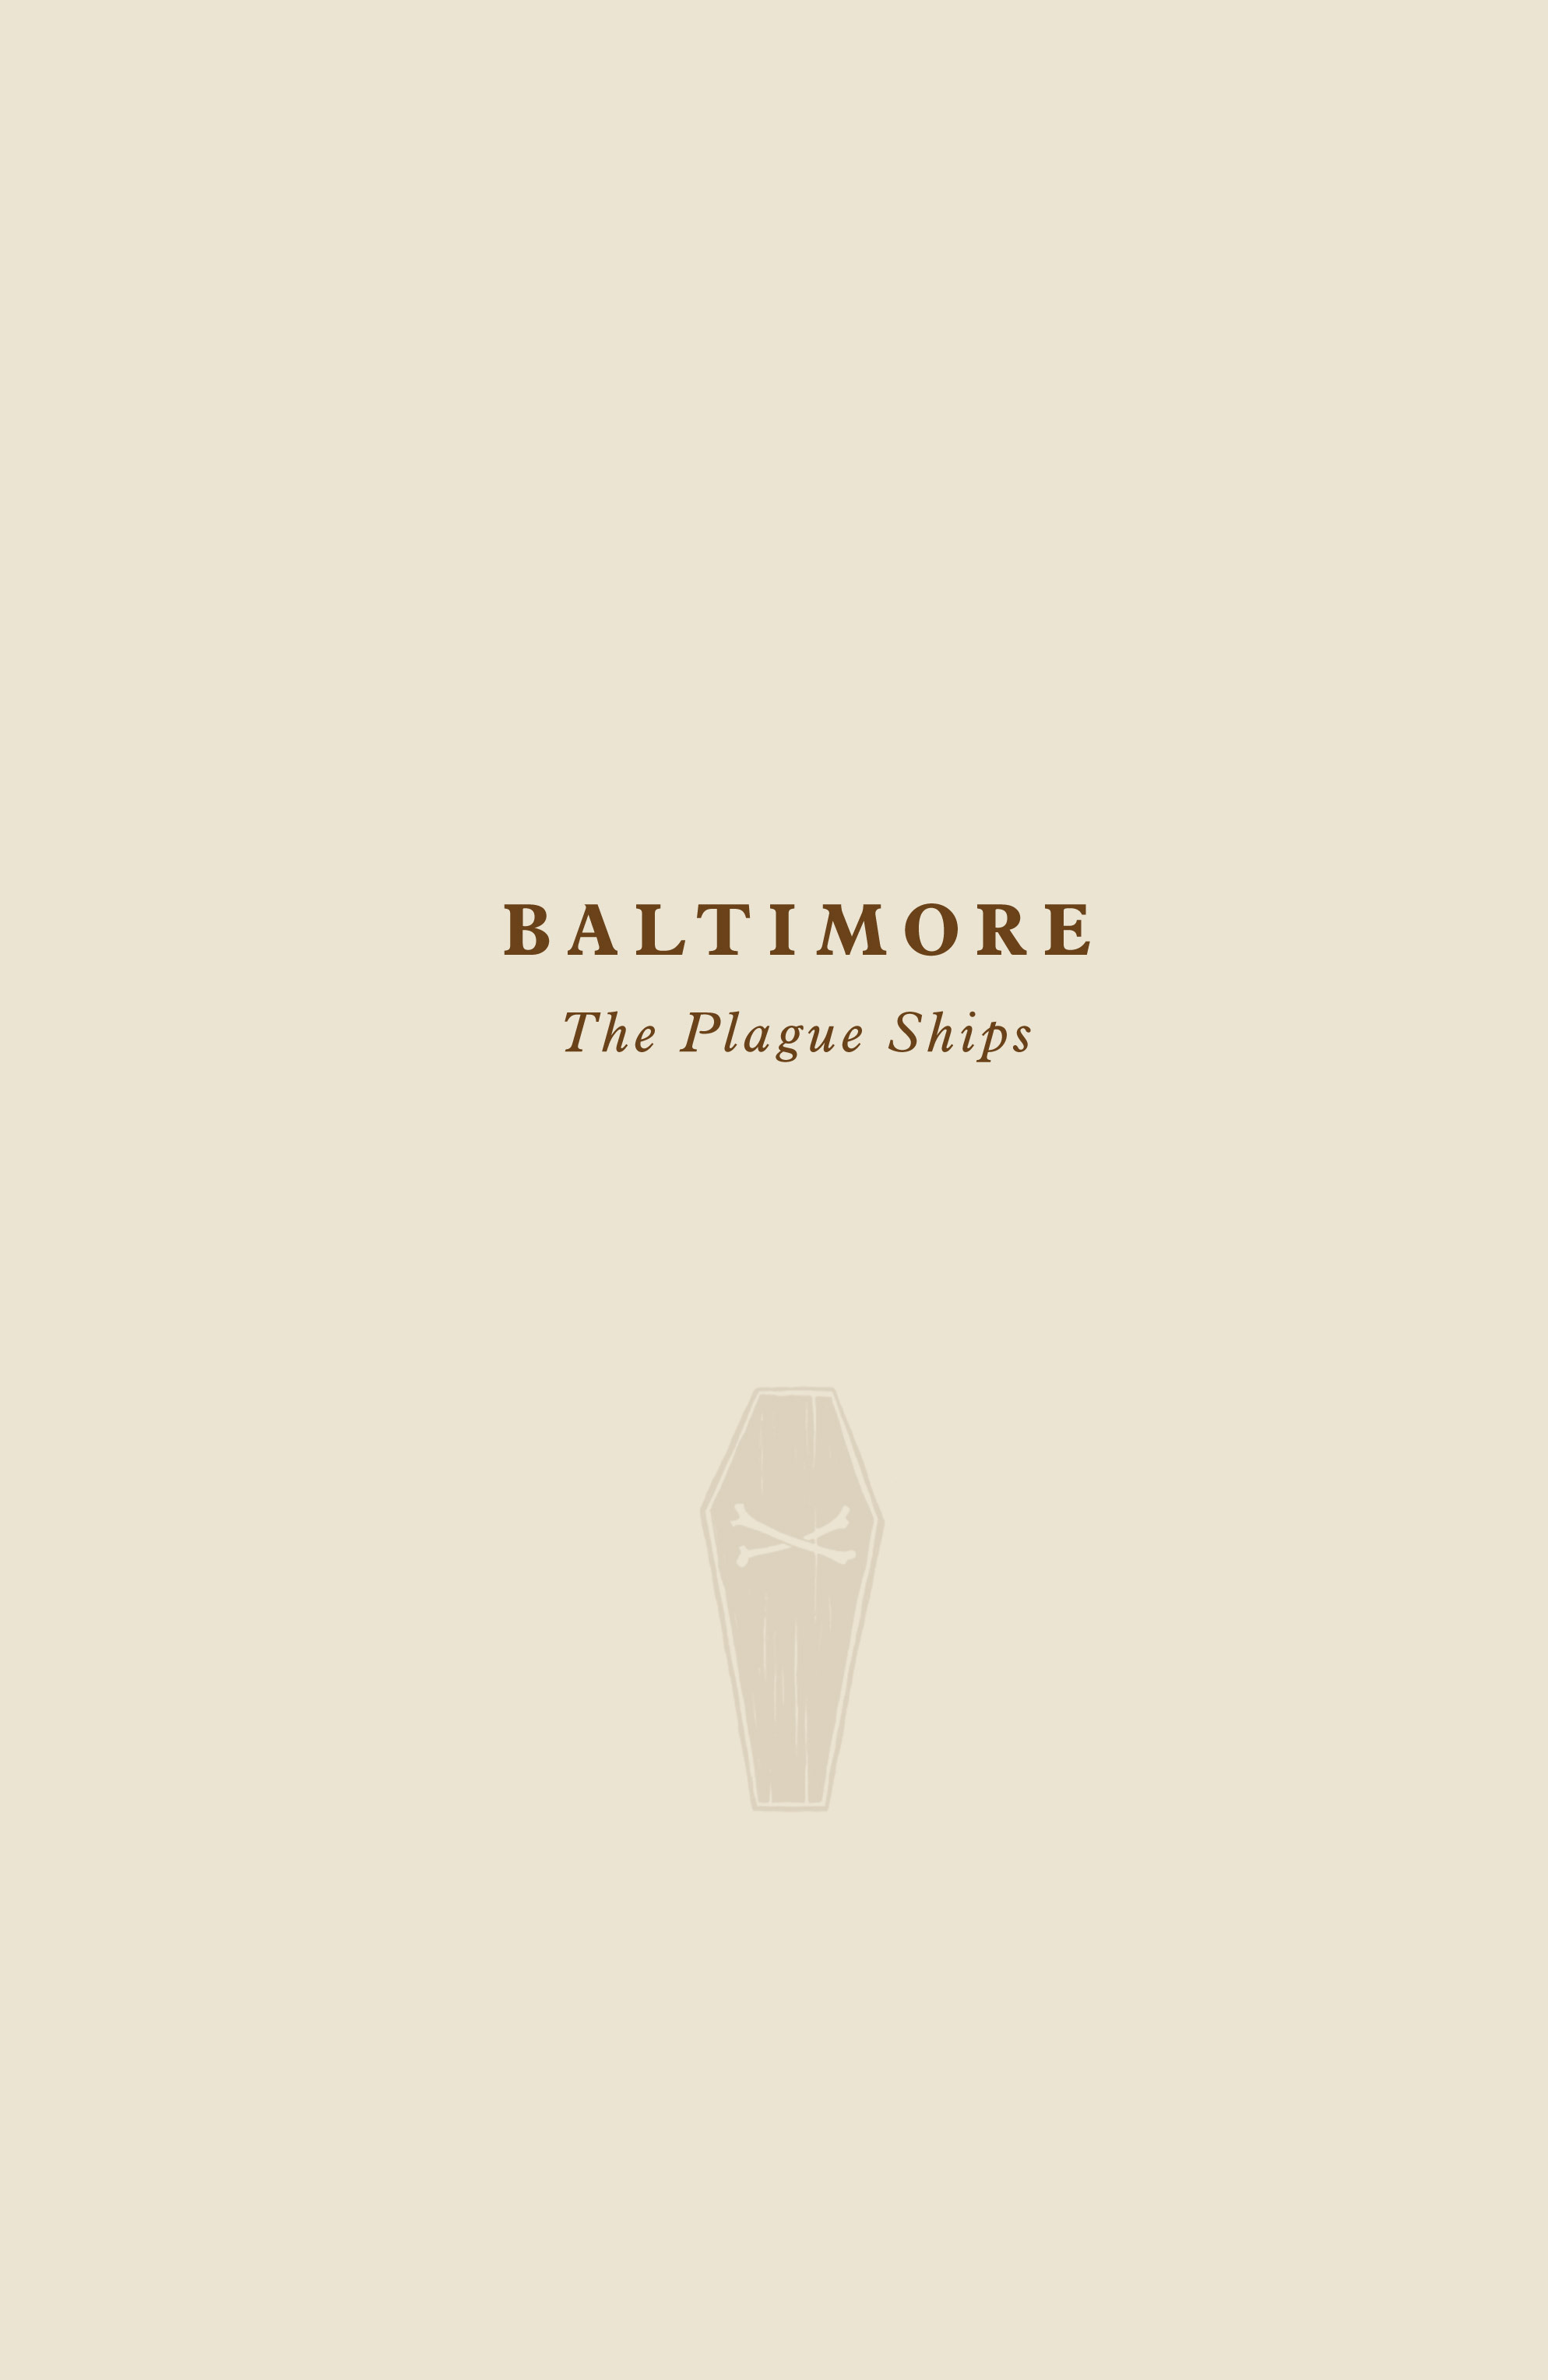 Read online Baltimore: The Plague Ships comic -  Issue # TPB - 3